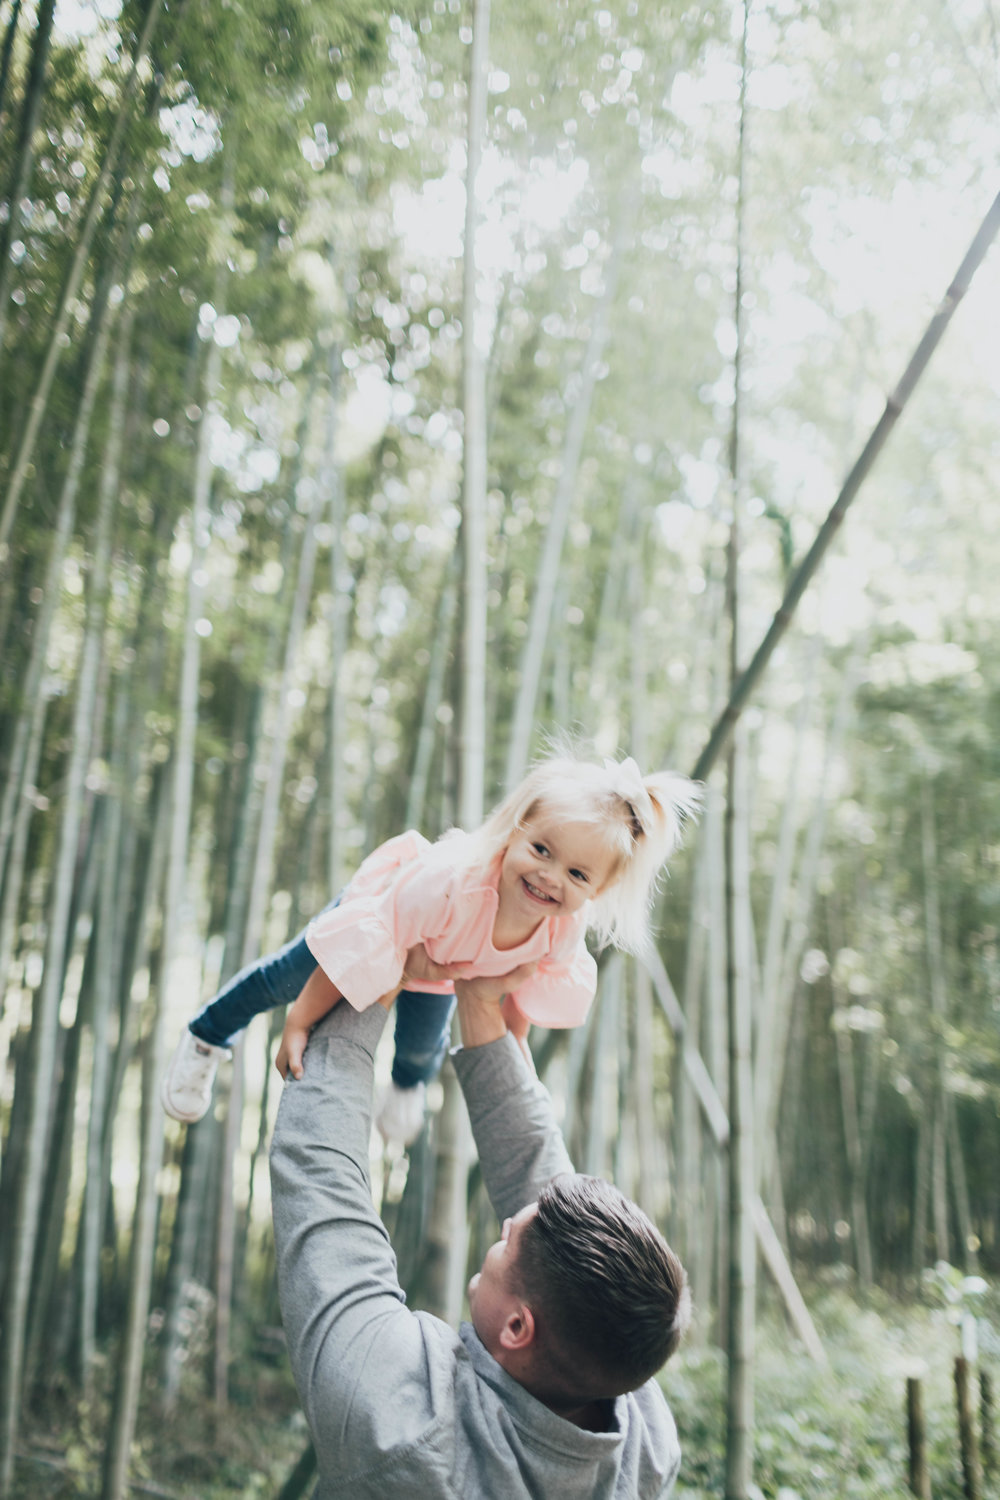 bamboo-forest-japan-family-session-photos-by-samantha-look.jpg